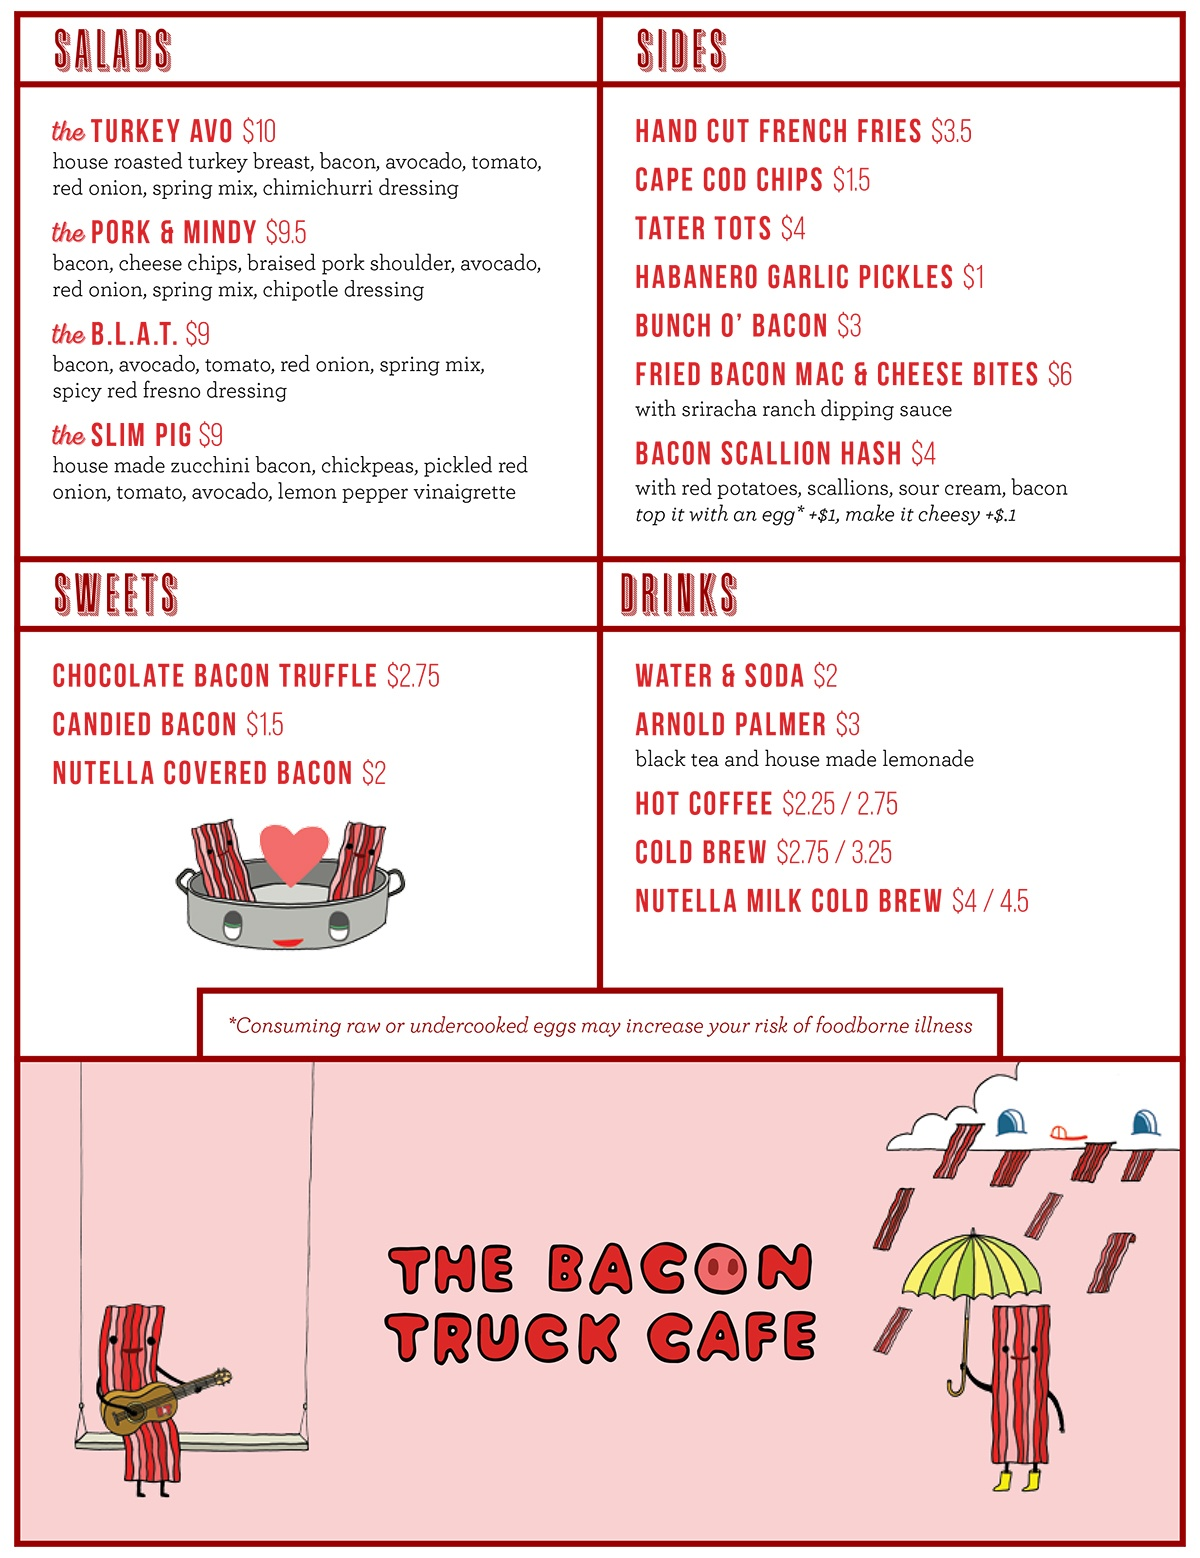 Bacon Truck Cafe menu page 2